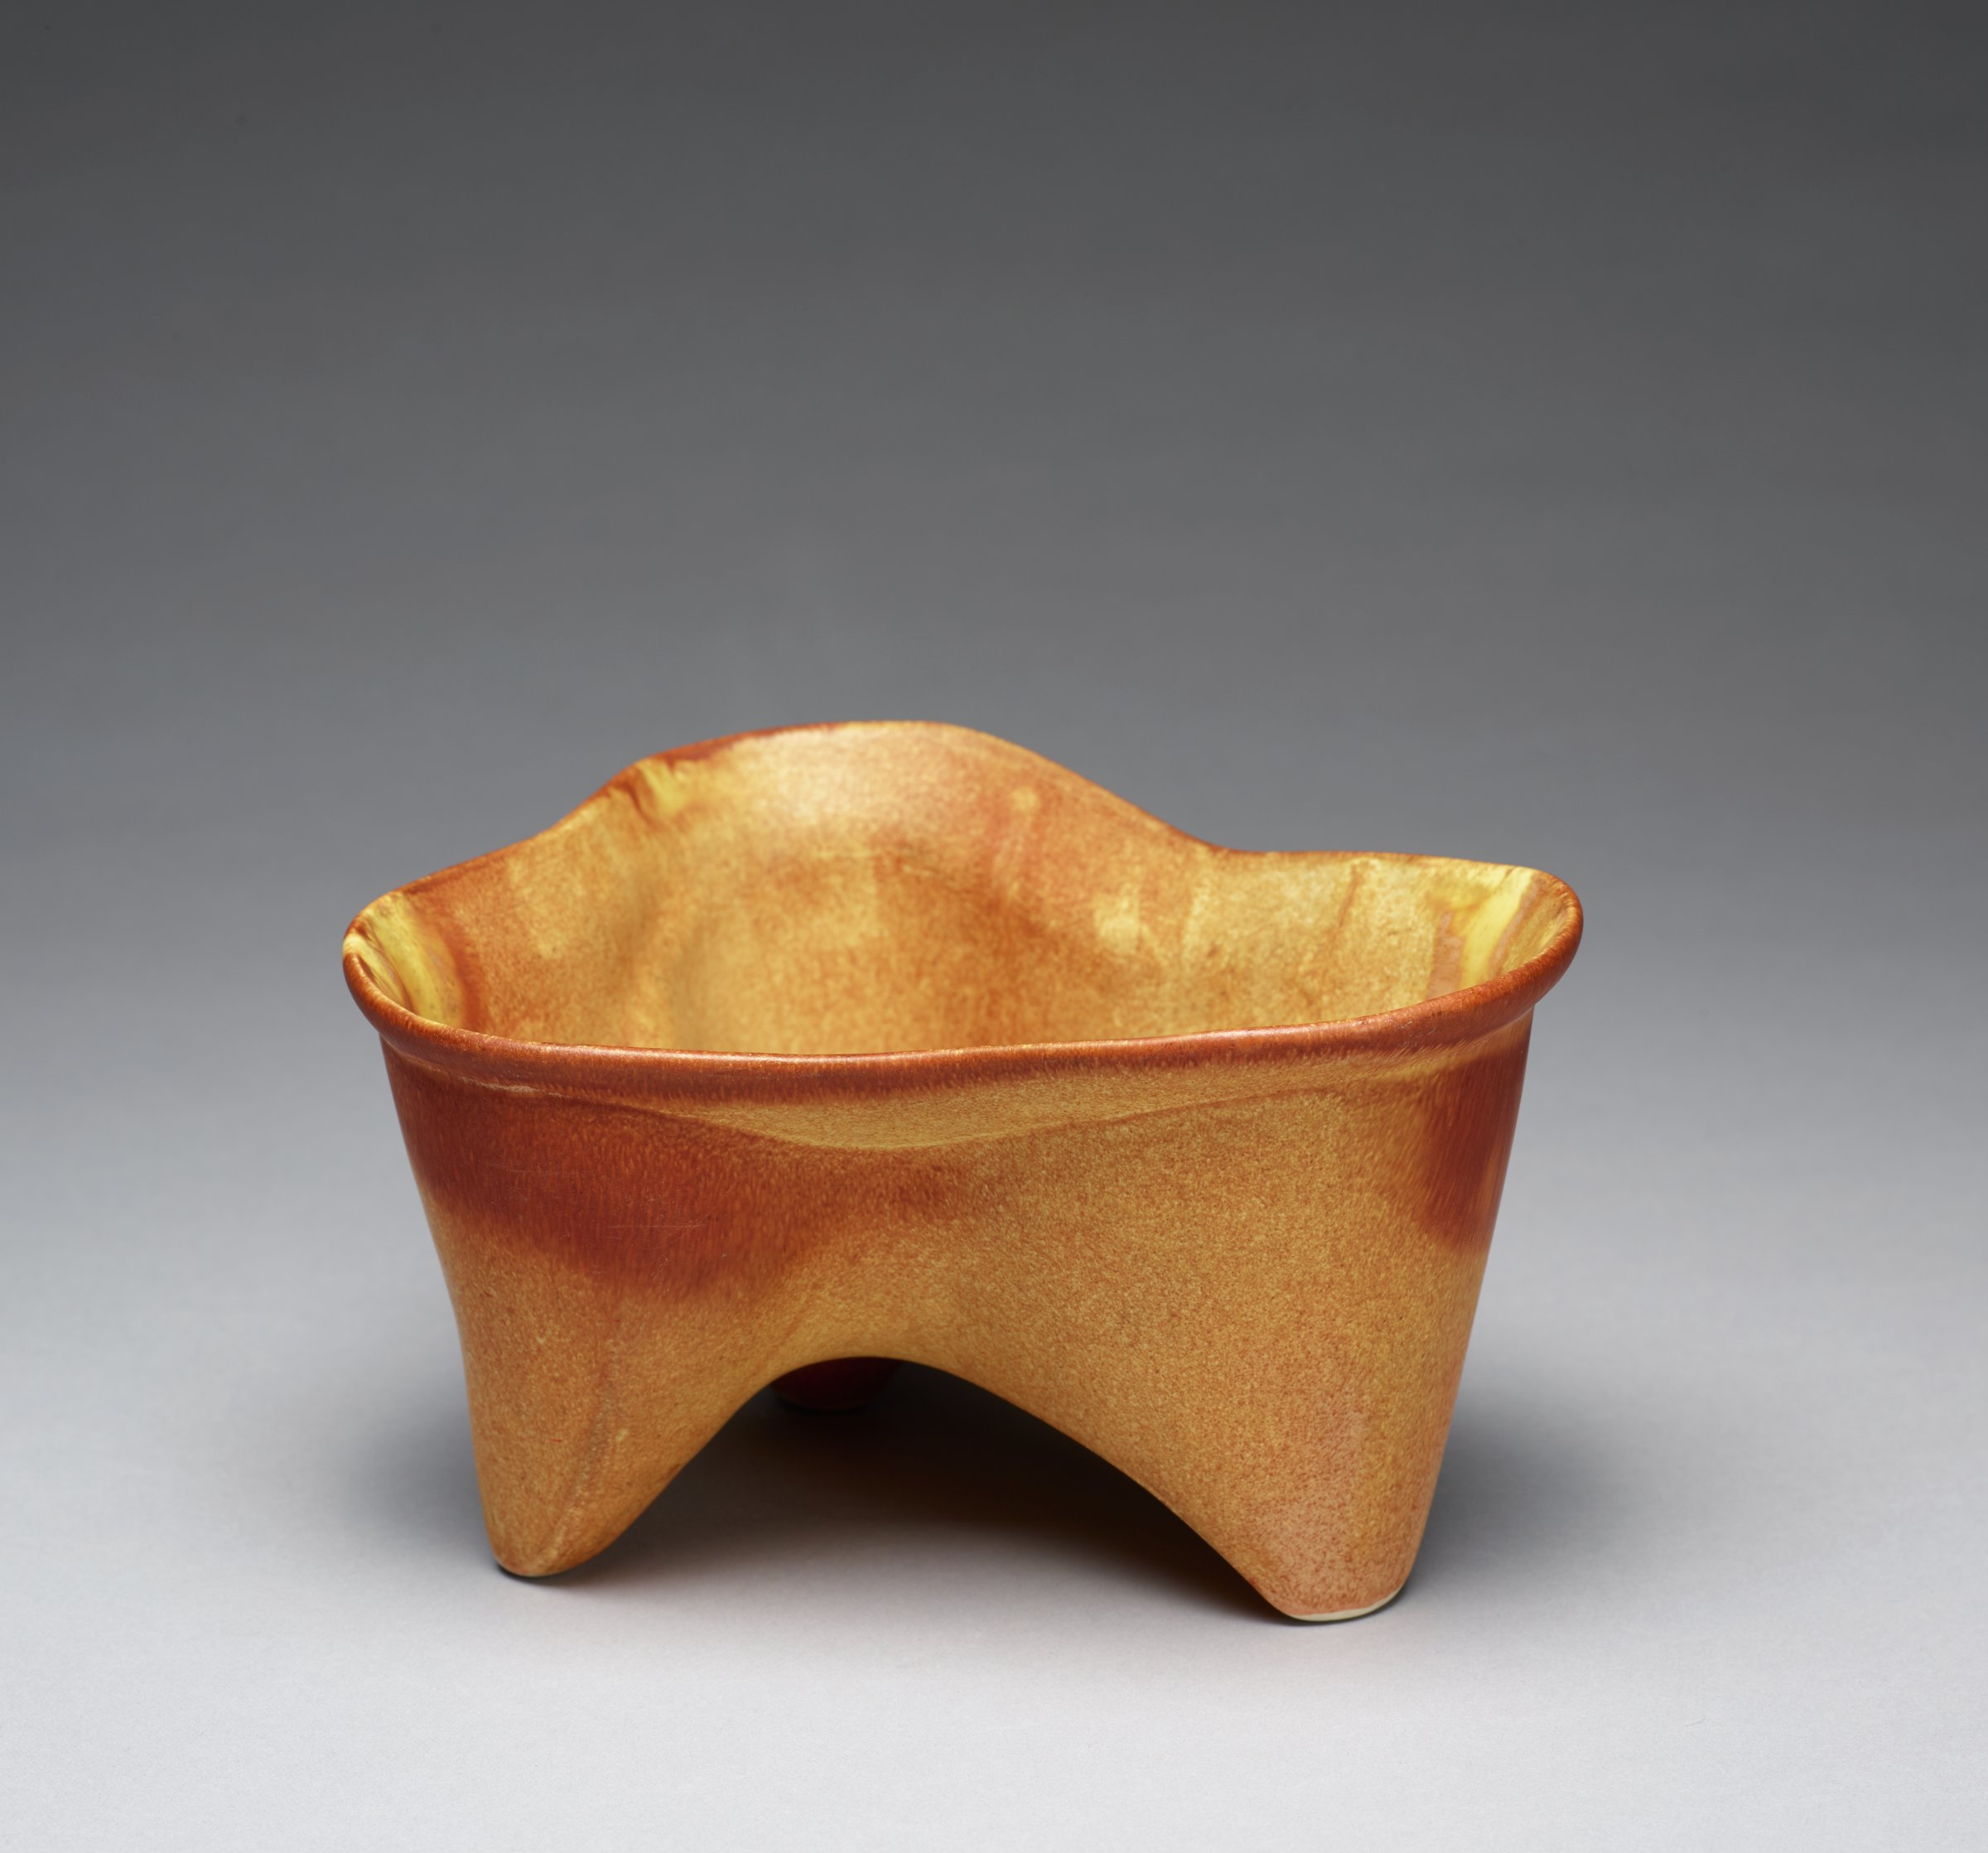 Three-footed molar-shaped vessel with speckled glaze graduating in color from a light tan on the body of the vessel to a darker brown at the rim.